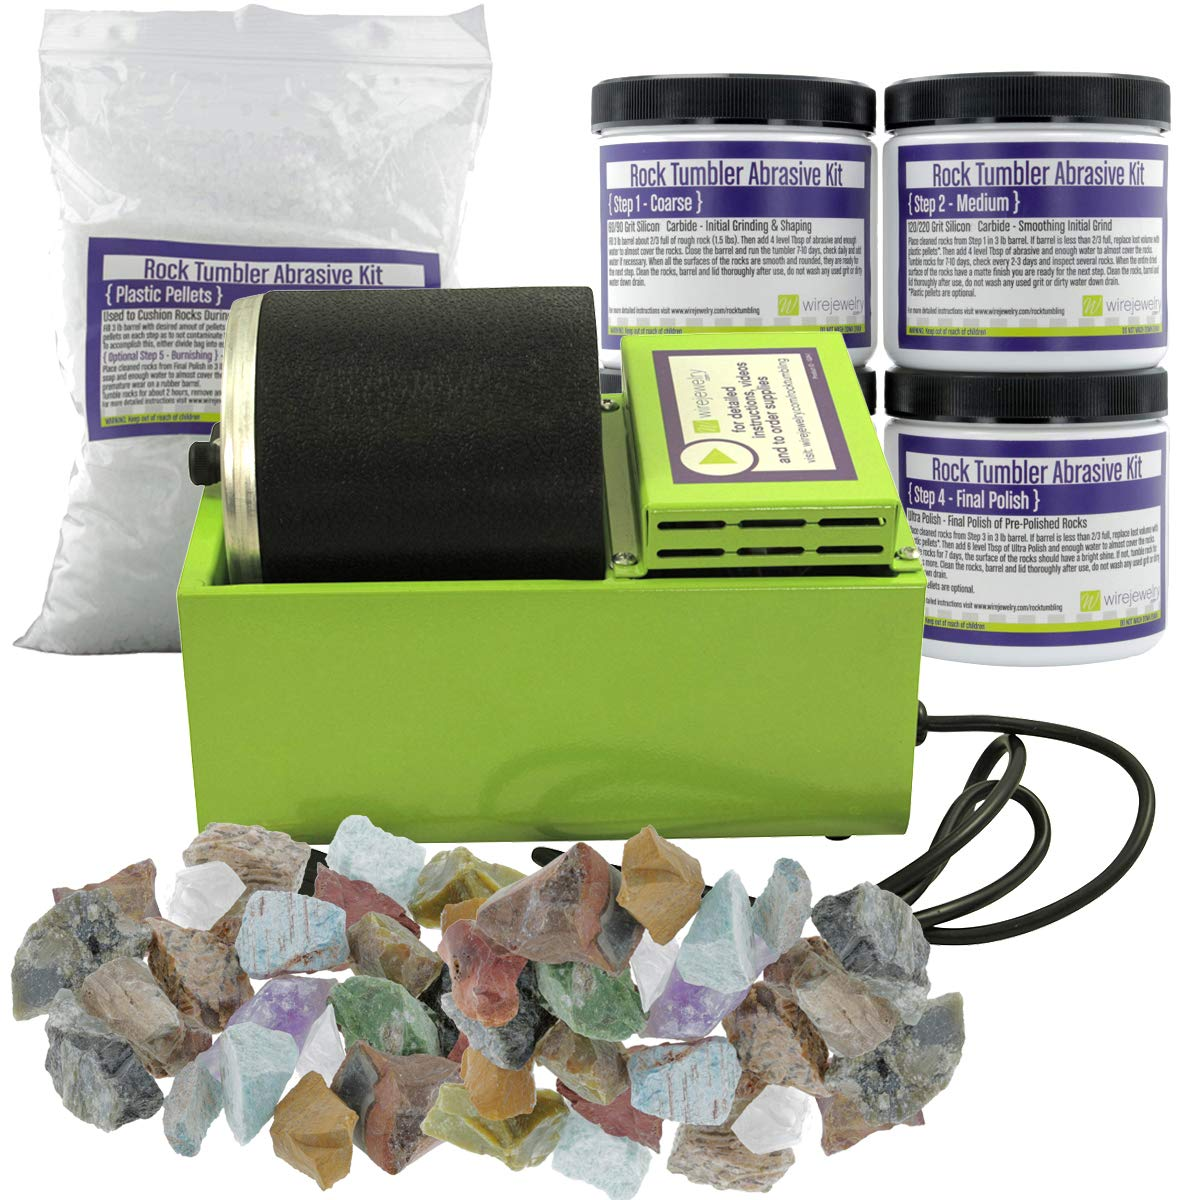 WireJewelry Single Barrel Rotary Rock Tumbler Deluxe Kit, Includes 3 Pounds of Rough Madagascar Stone Mix and 5 Batches of 4 Step Abrasive Grit and Polish by WireJewelry